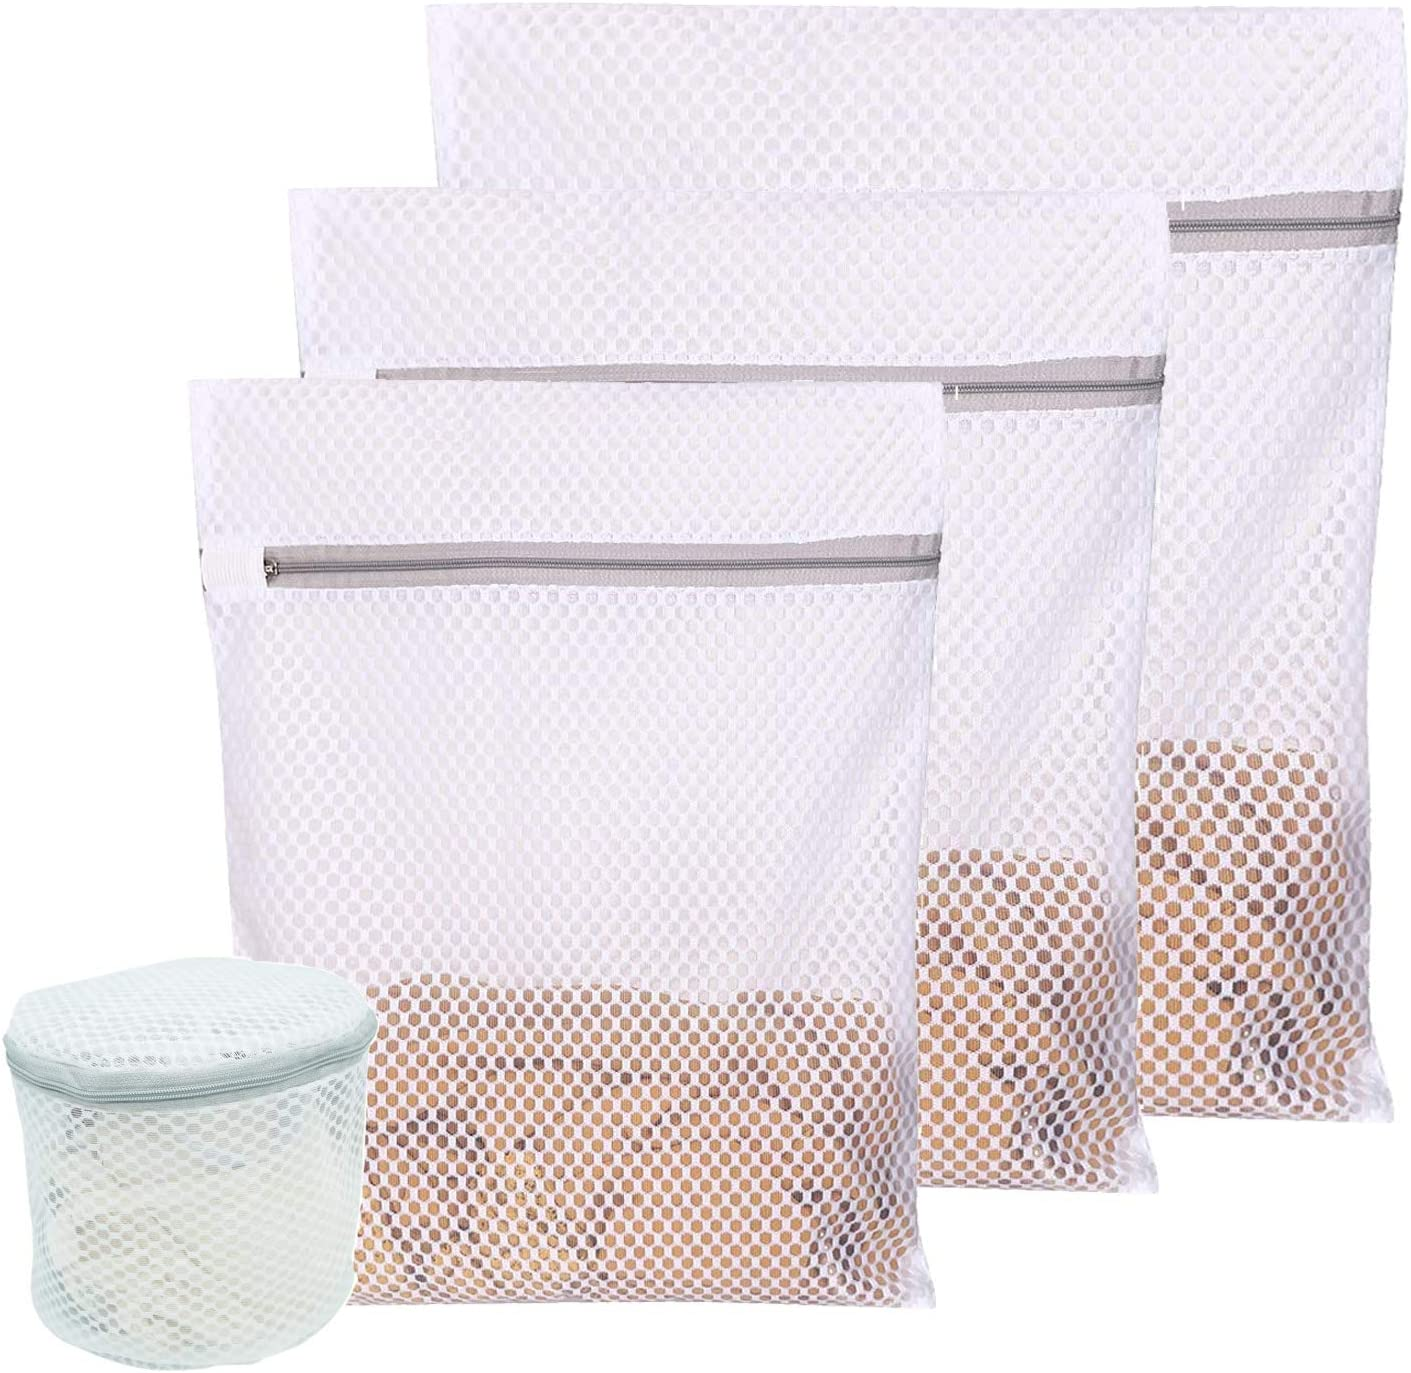 Mliepow 4 Pack Premium Large Mesh Laundry Bag, Zippered Polyester Washing Protector Breathable Mesh Fabric Wash Bag for Laundry, Blouse, Hosiery, Stocking, Pantyhose, Socks, Underwear, Bra, Lingerie